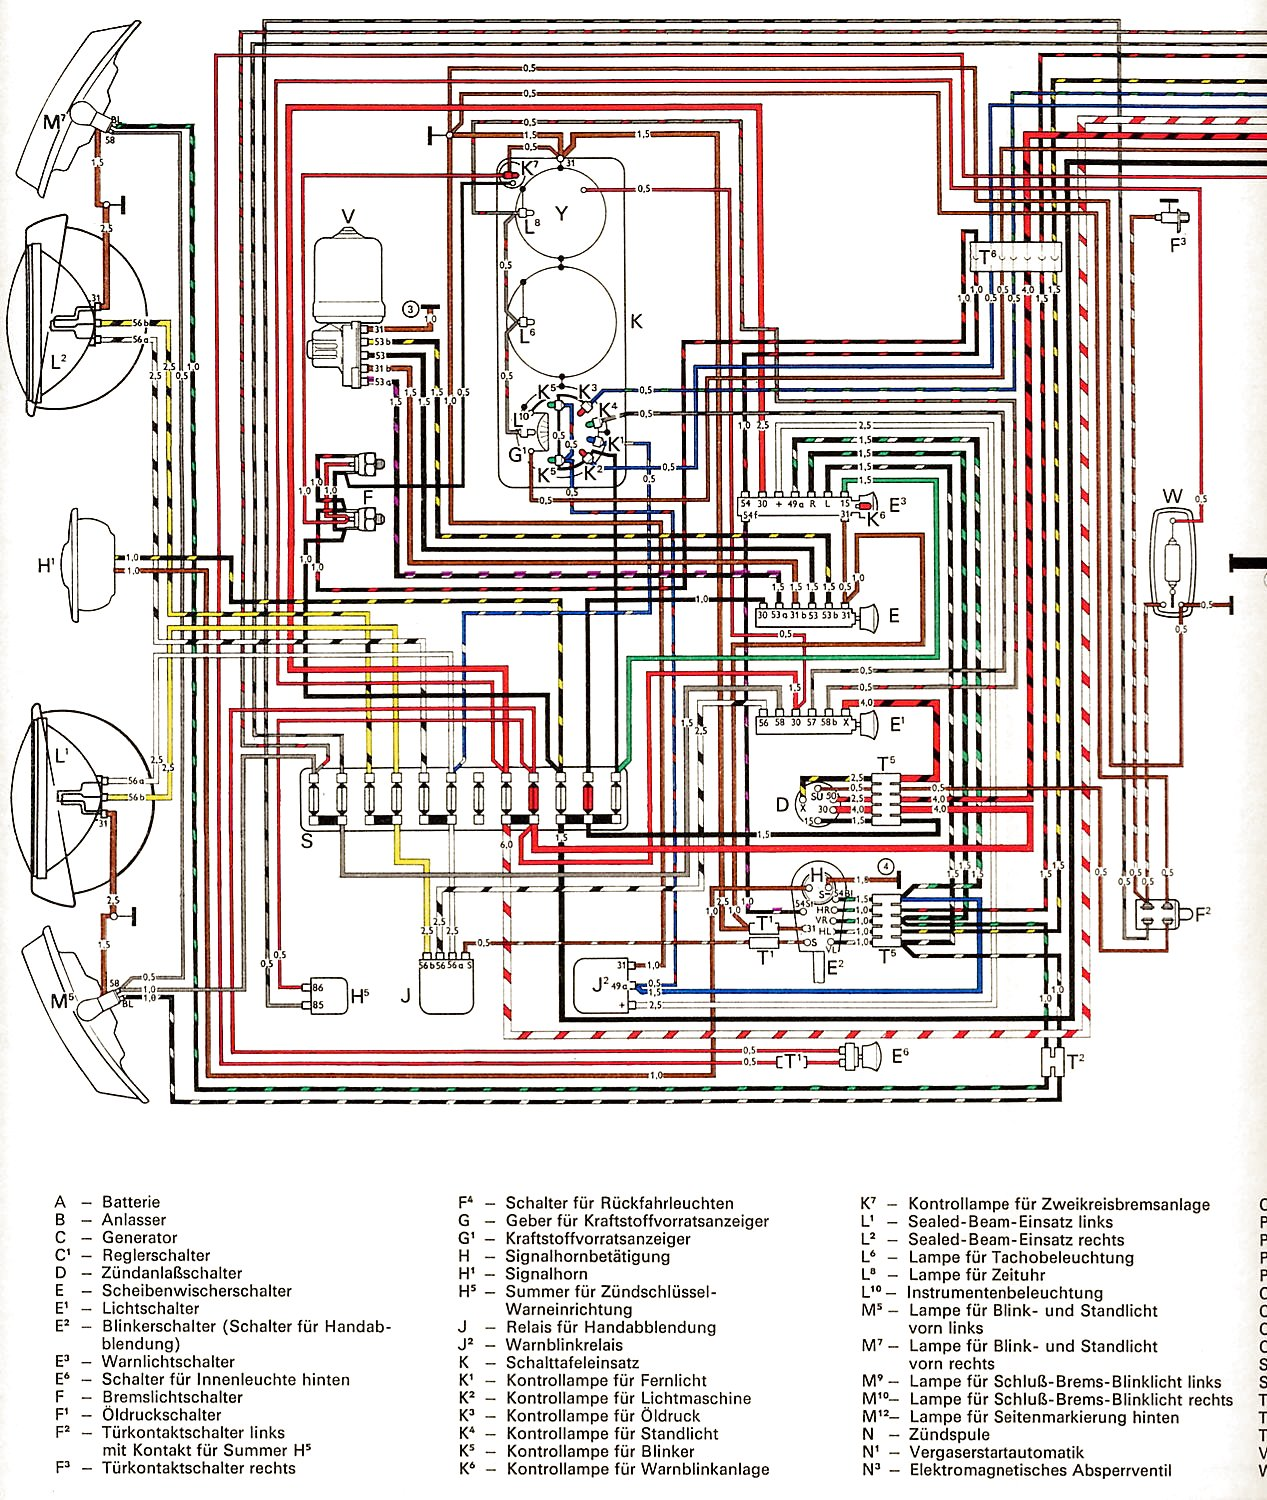 hight resolution of 74 vw beetle wiring diagram wiring library rh 49 rheinhessen raids de vw alternator conversion wiring diagram vw beetle alternator wiring diagram